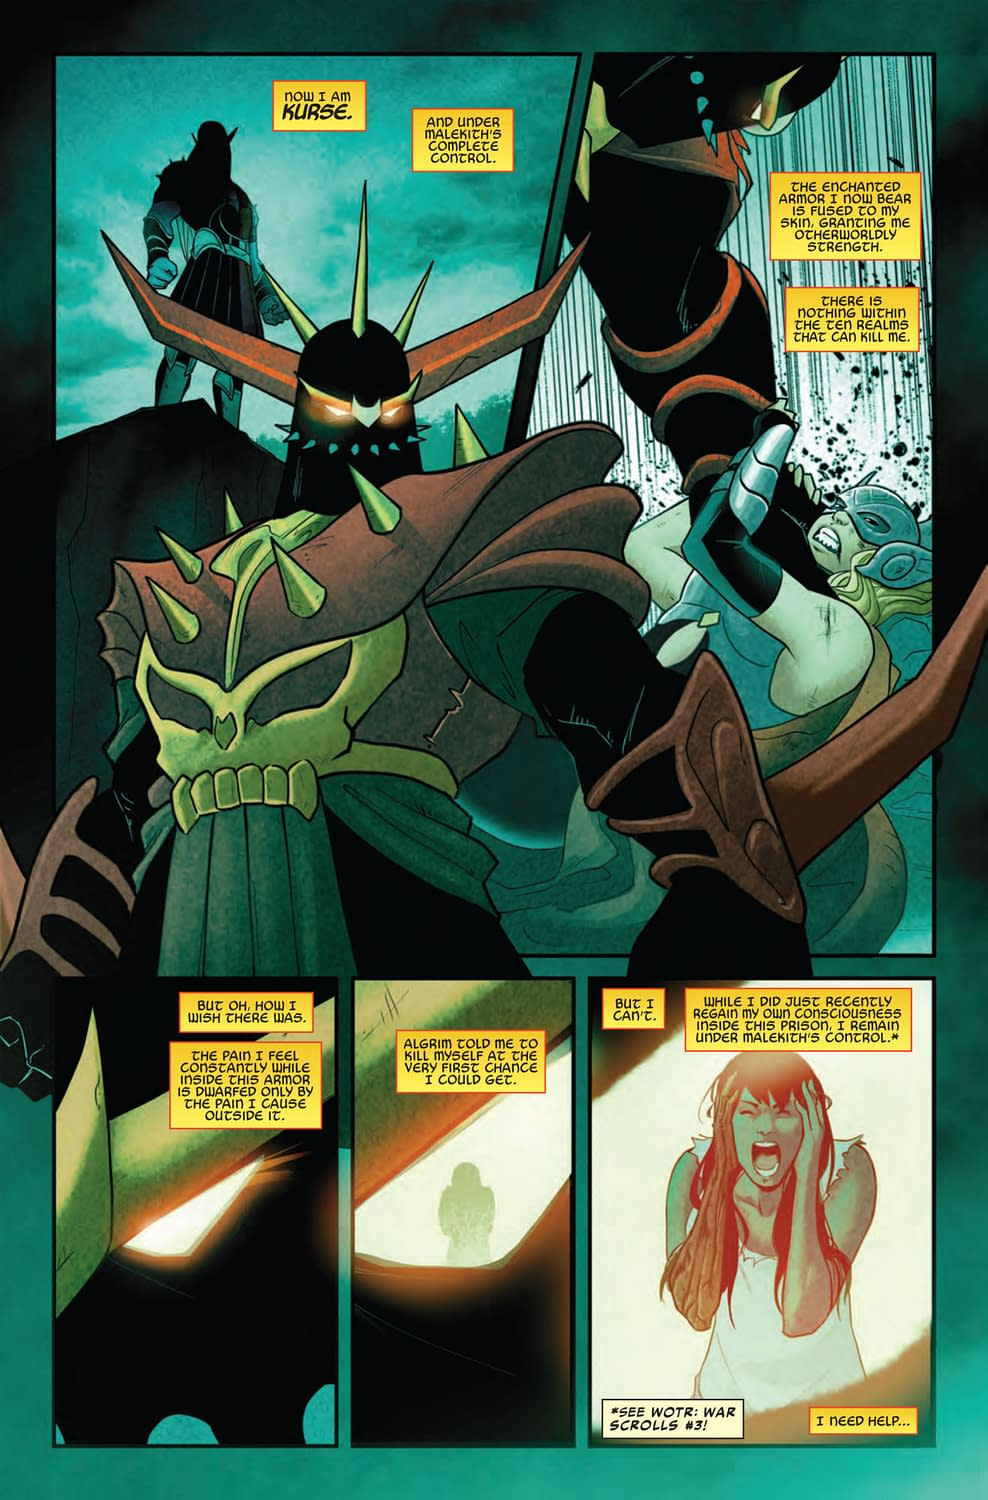 Mixed Messages from Kurse in Spider-Man and the League of Realms #3